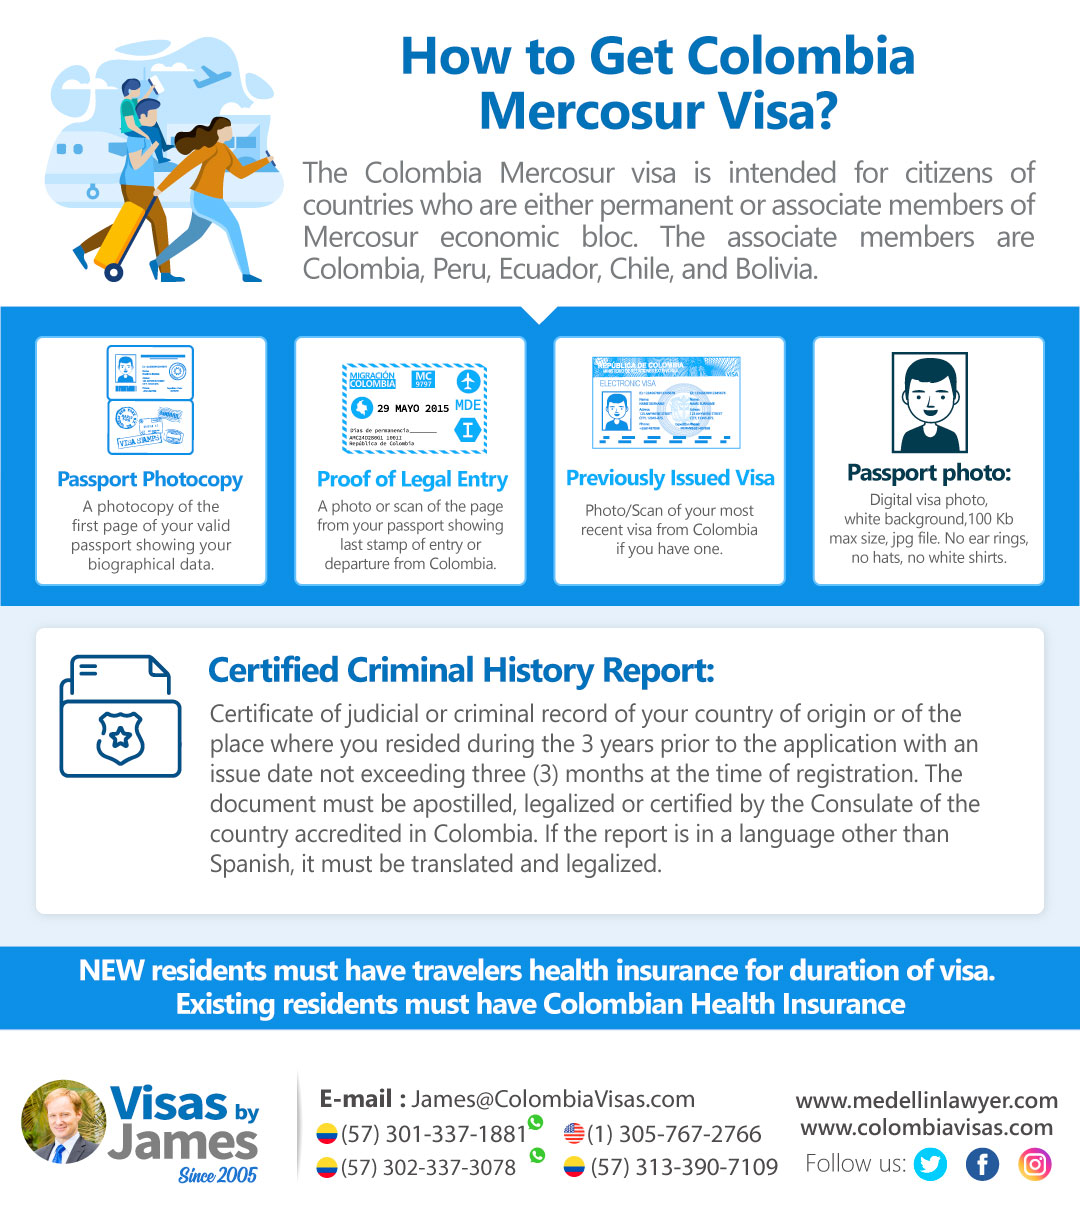 How To get Colombia Mercosur Visa in 2020